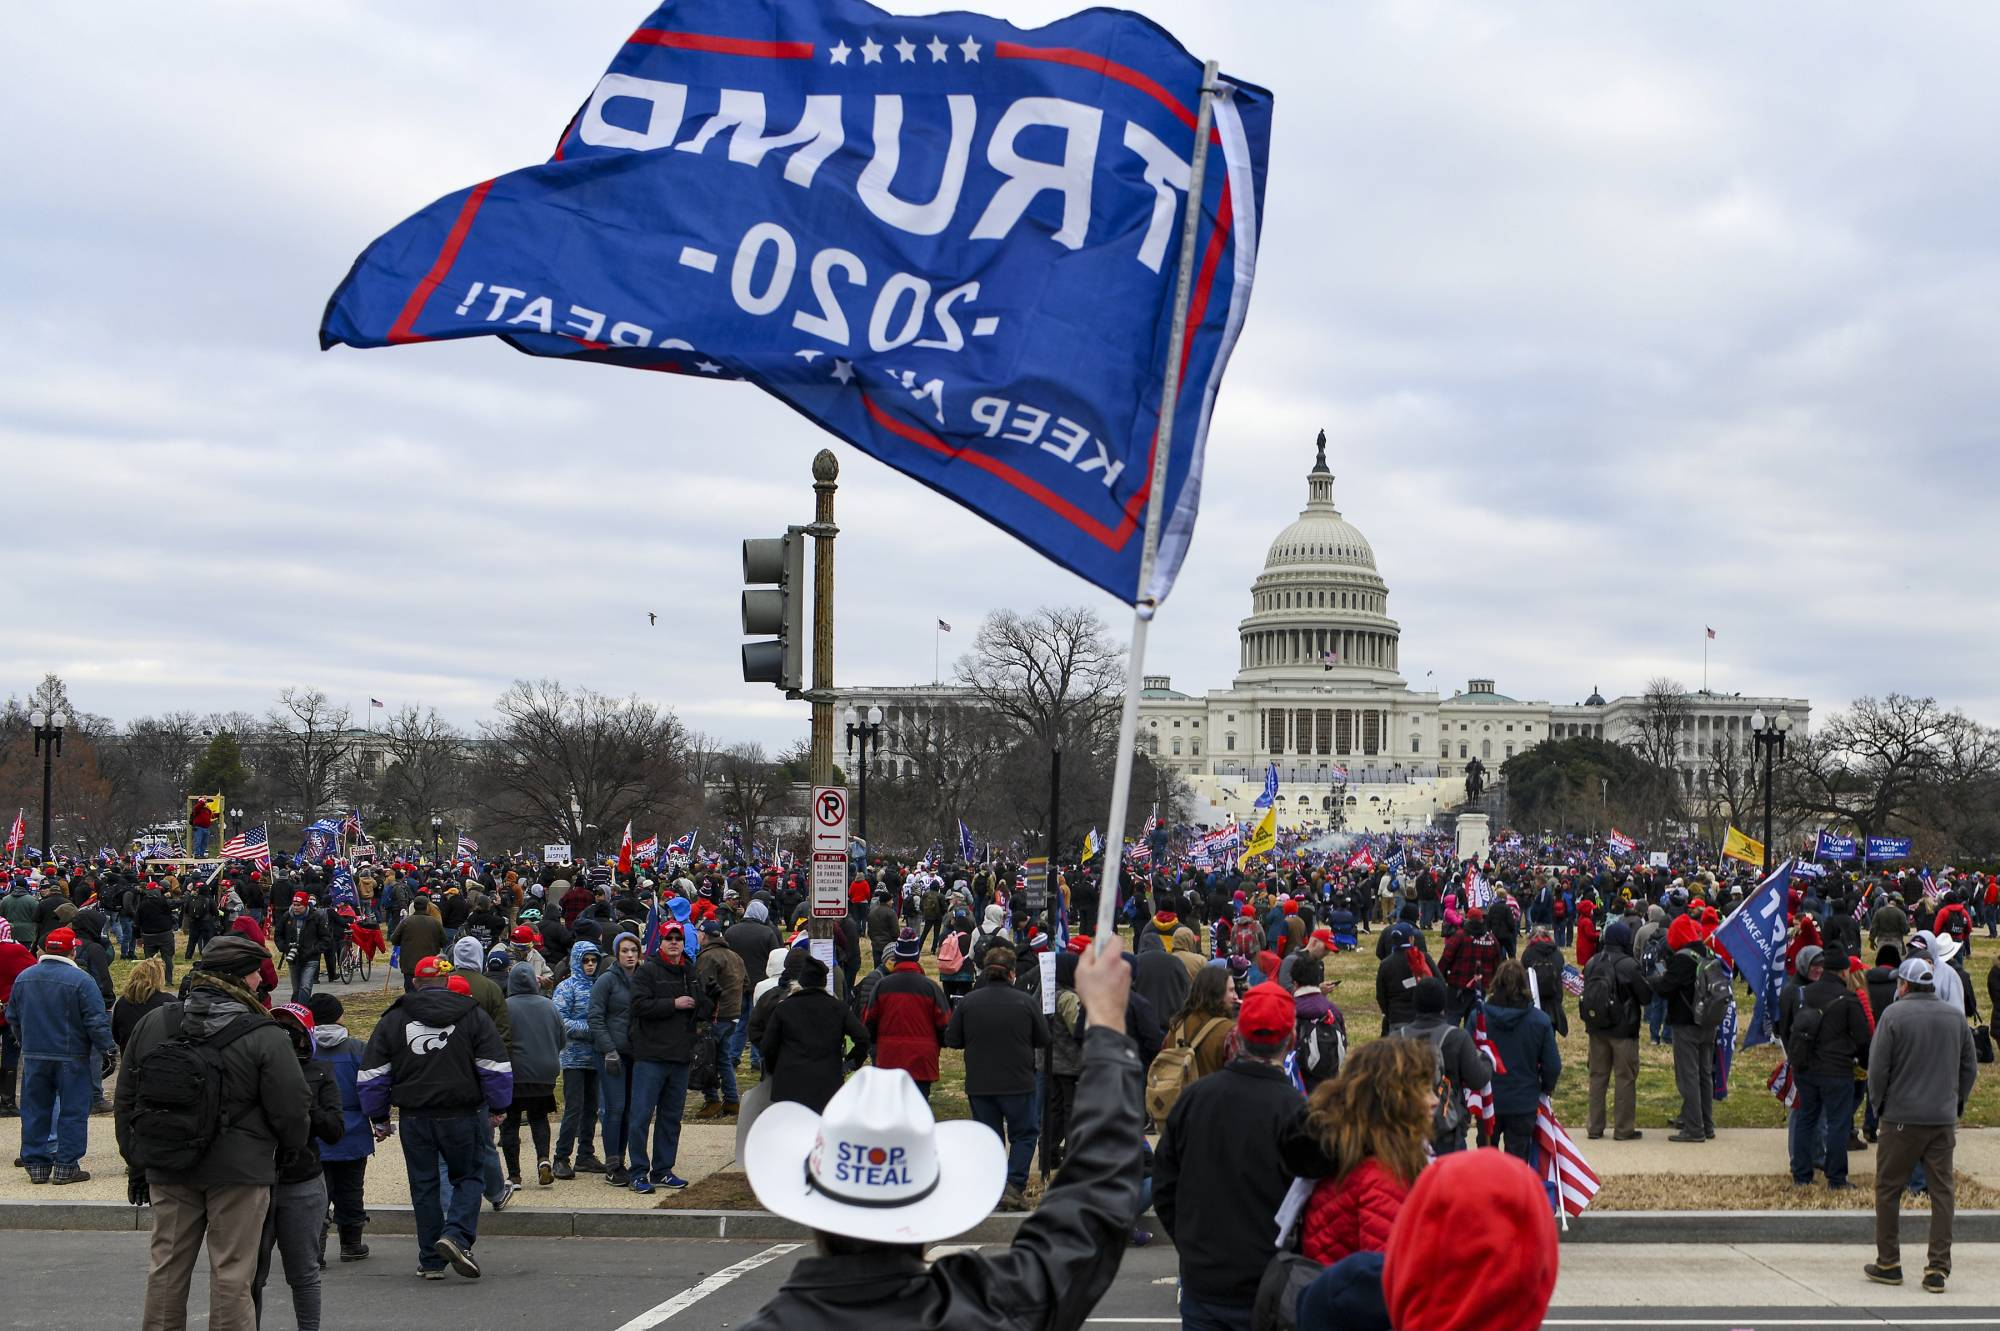 Supporters of U.S. President Donald Trump march to the Capitol in Washington after hearing him speak at a rally outside the White House on Jan. 6.  | KENNY HOLSTON / THE NEW YORK TIMES